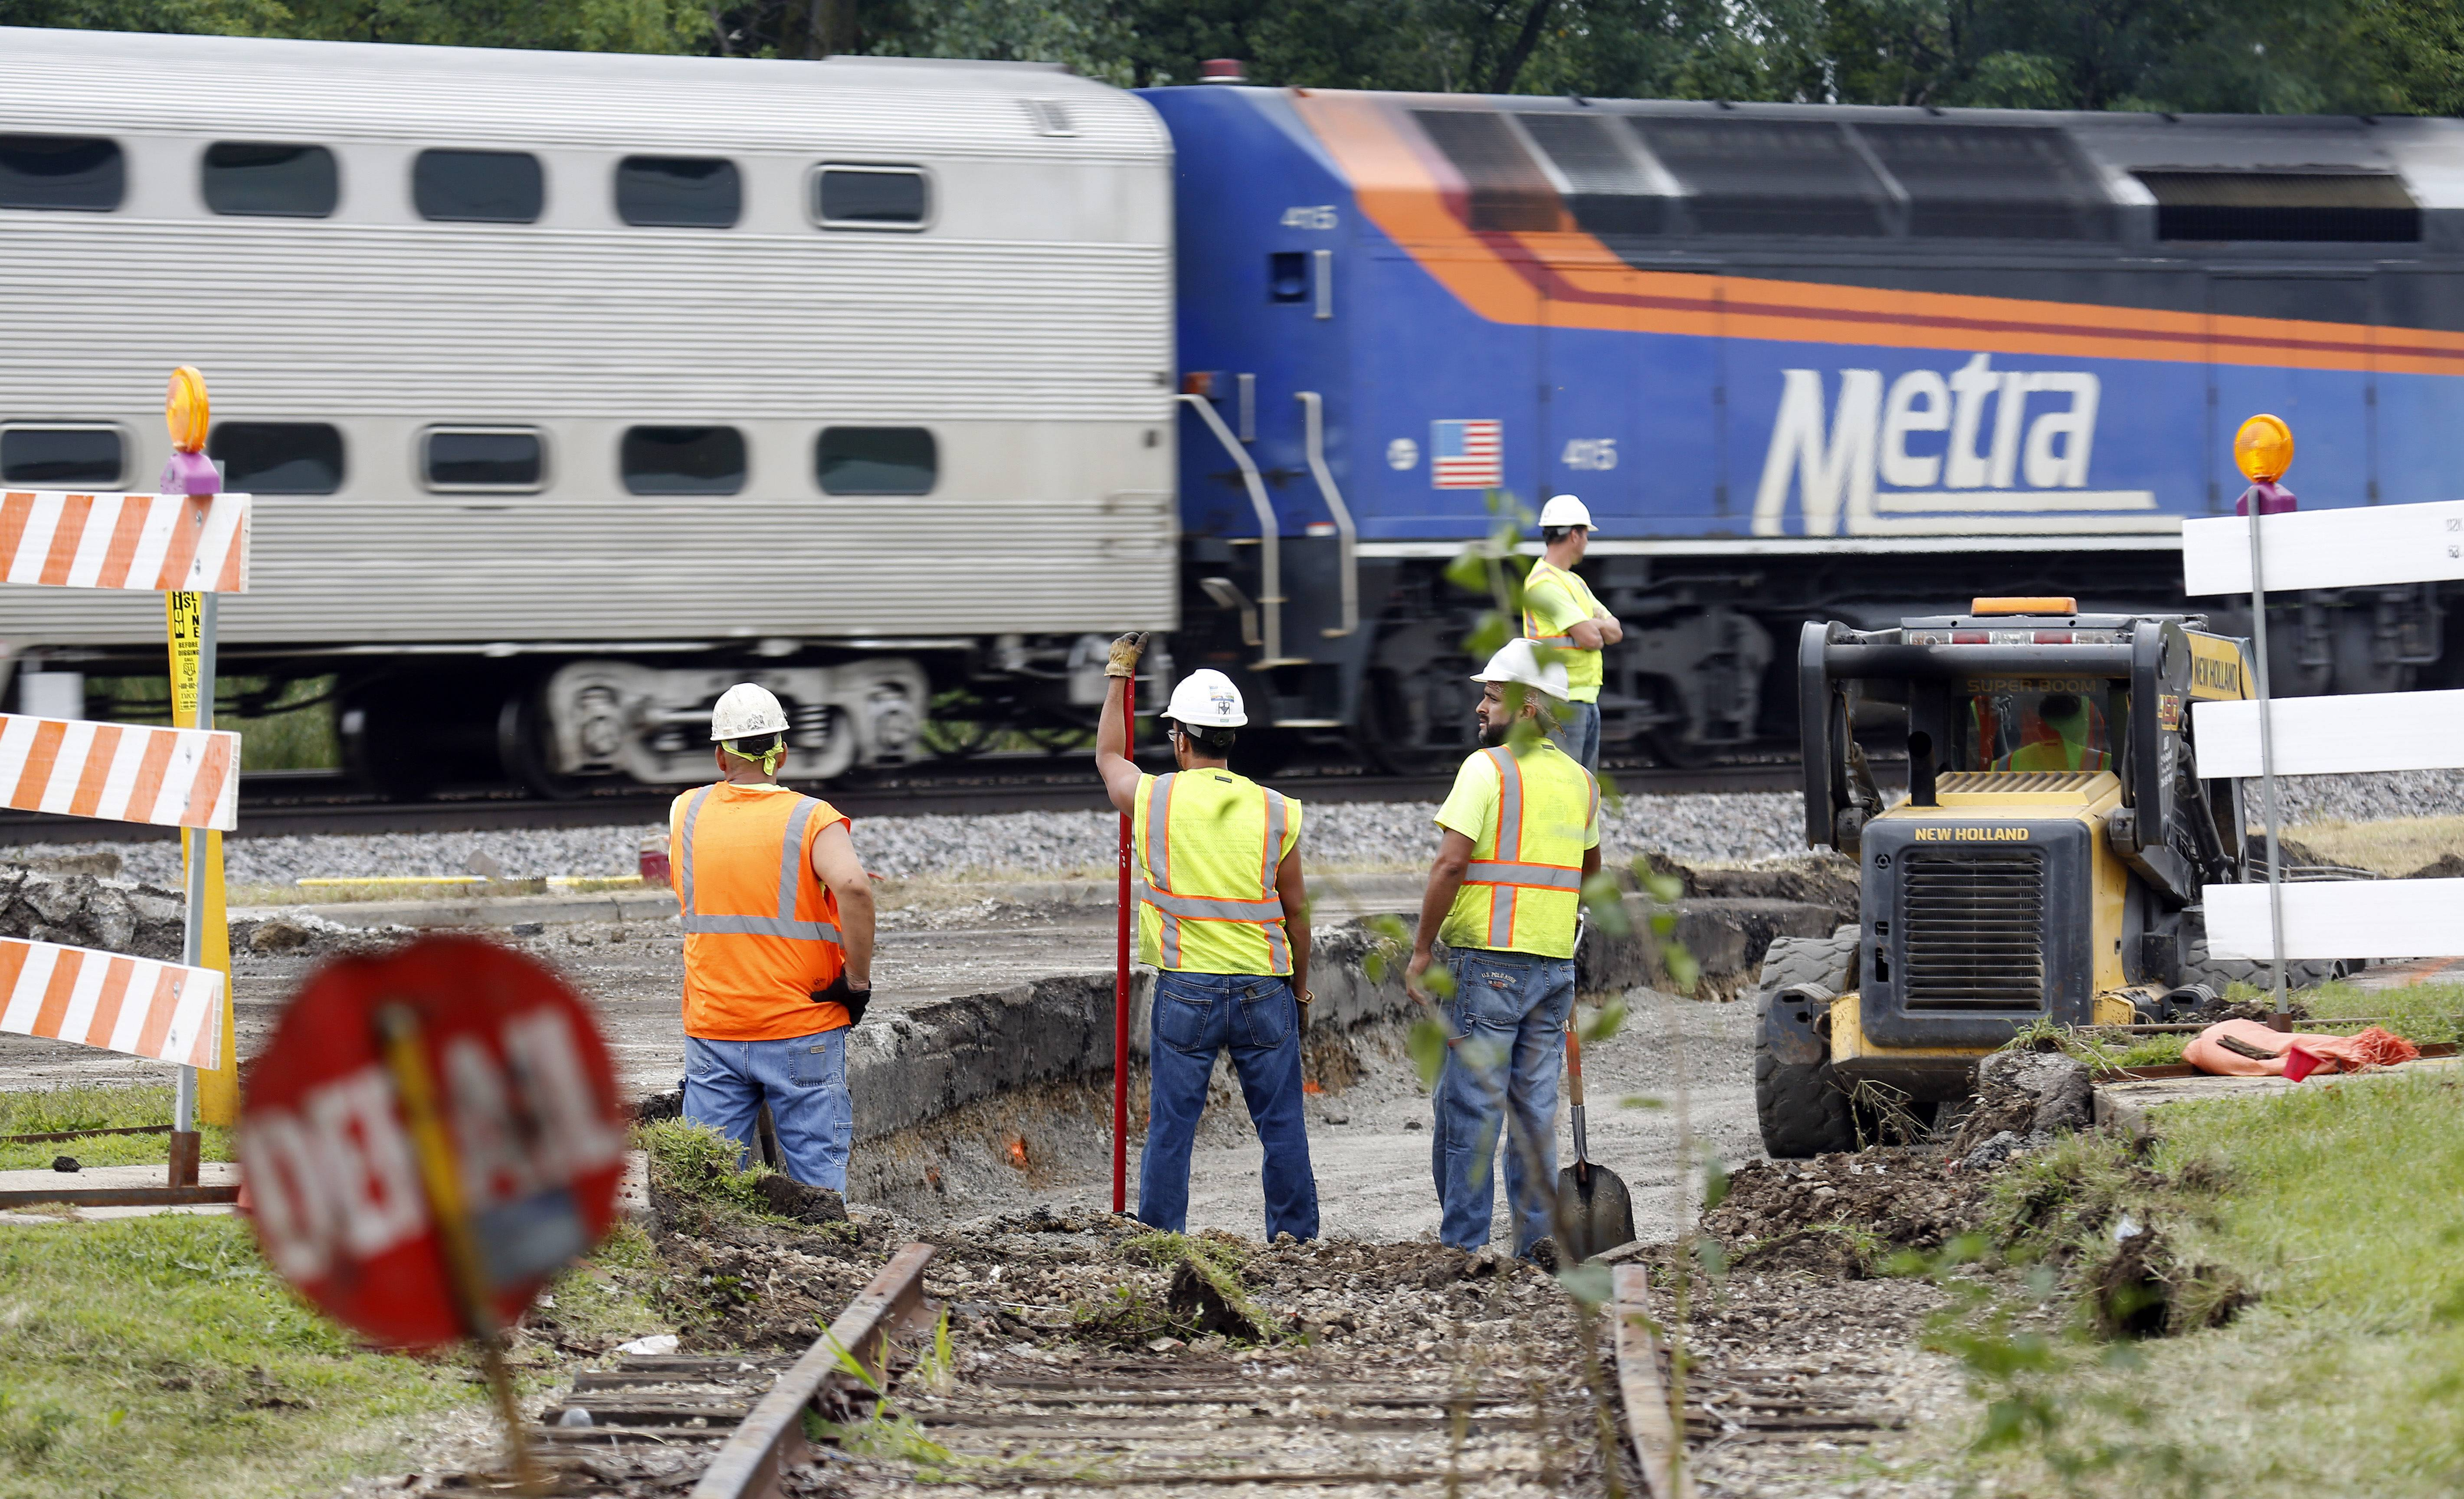 A Metra train travels west along Big Timber Road Tuesday as repair work on the railroad track spur at 1600 Big Timber Road continues. Big Timber Road is closed from Todd Farm Drive to McLean Boulevard through at least Friday.